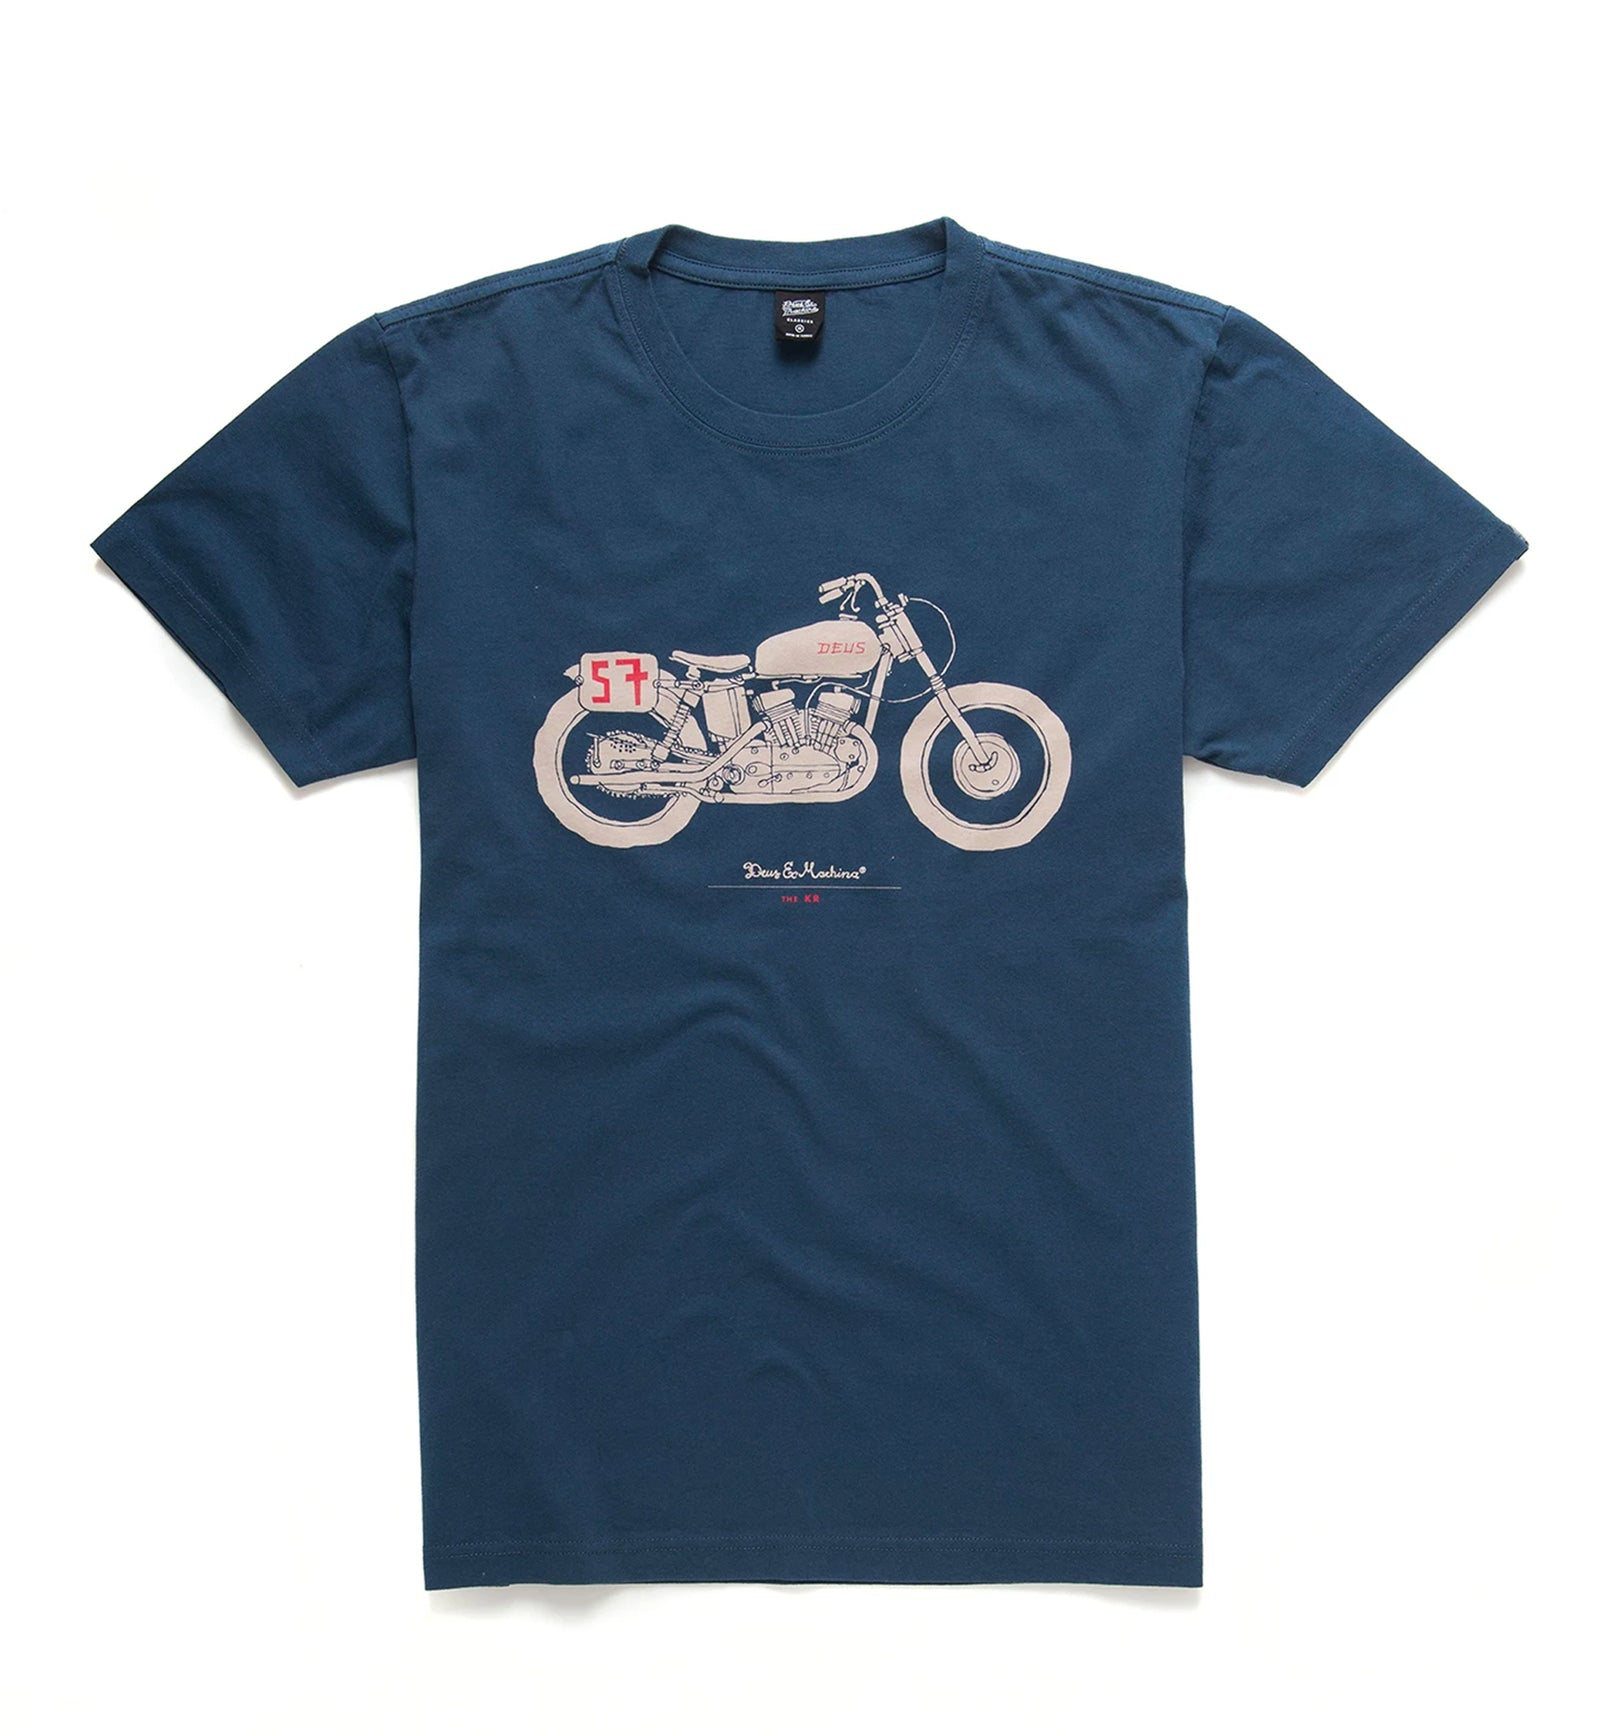 Deus The Kr T-Shirt- Navy